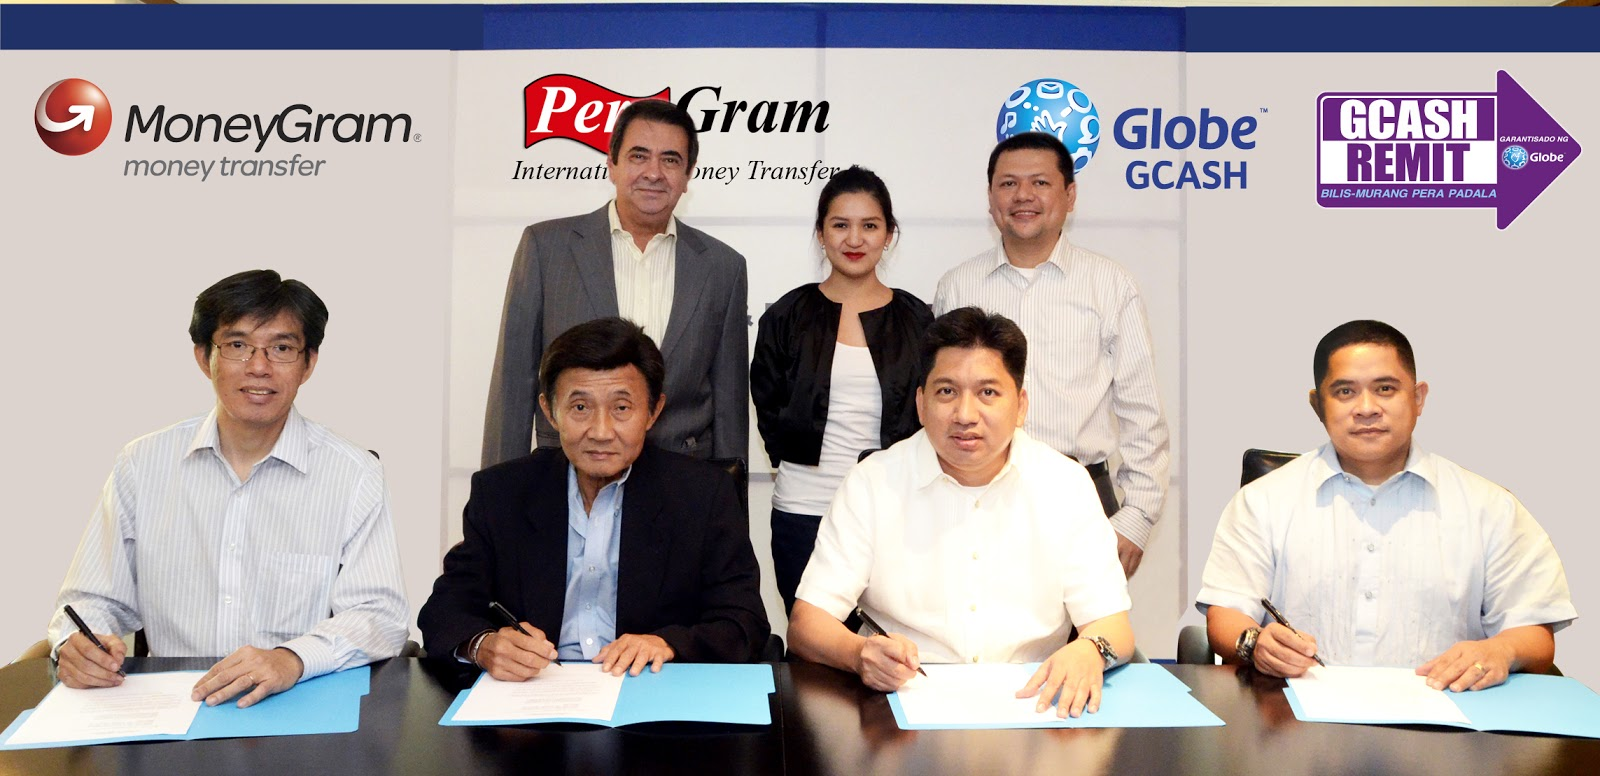 MoneyGram Boosts its Money Transfer Services with Globe GCASH